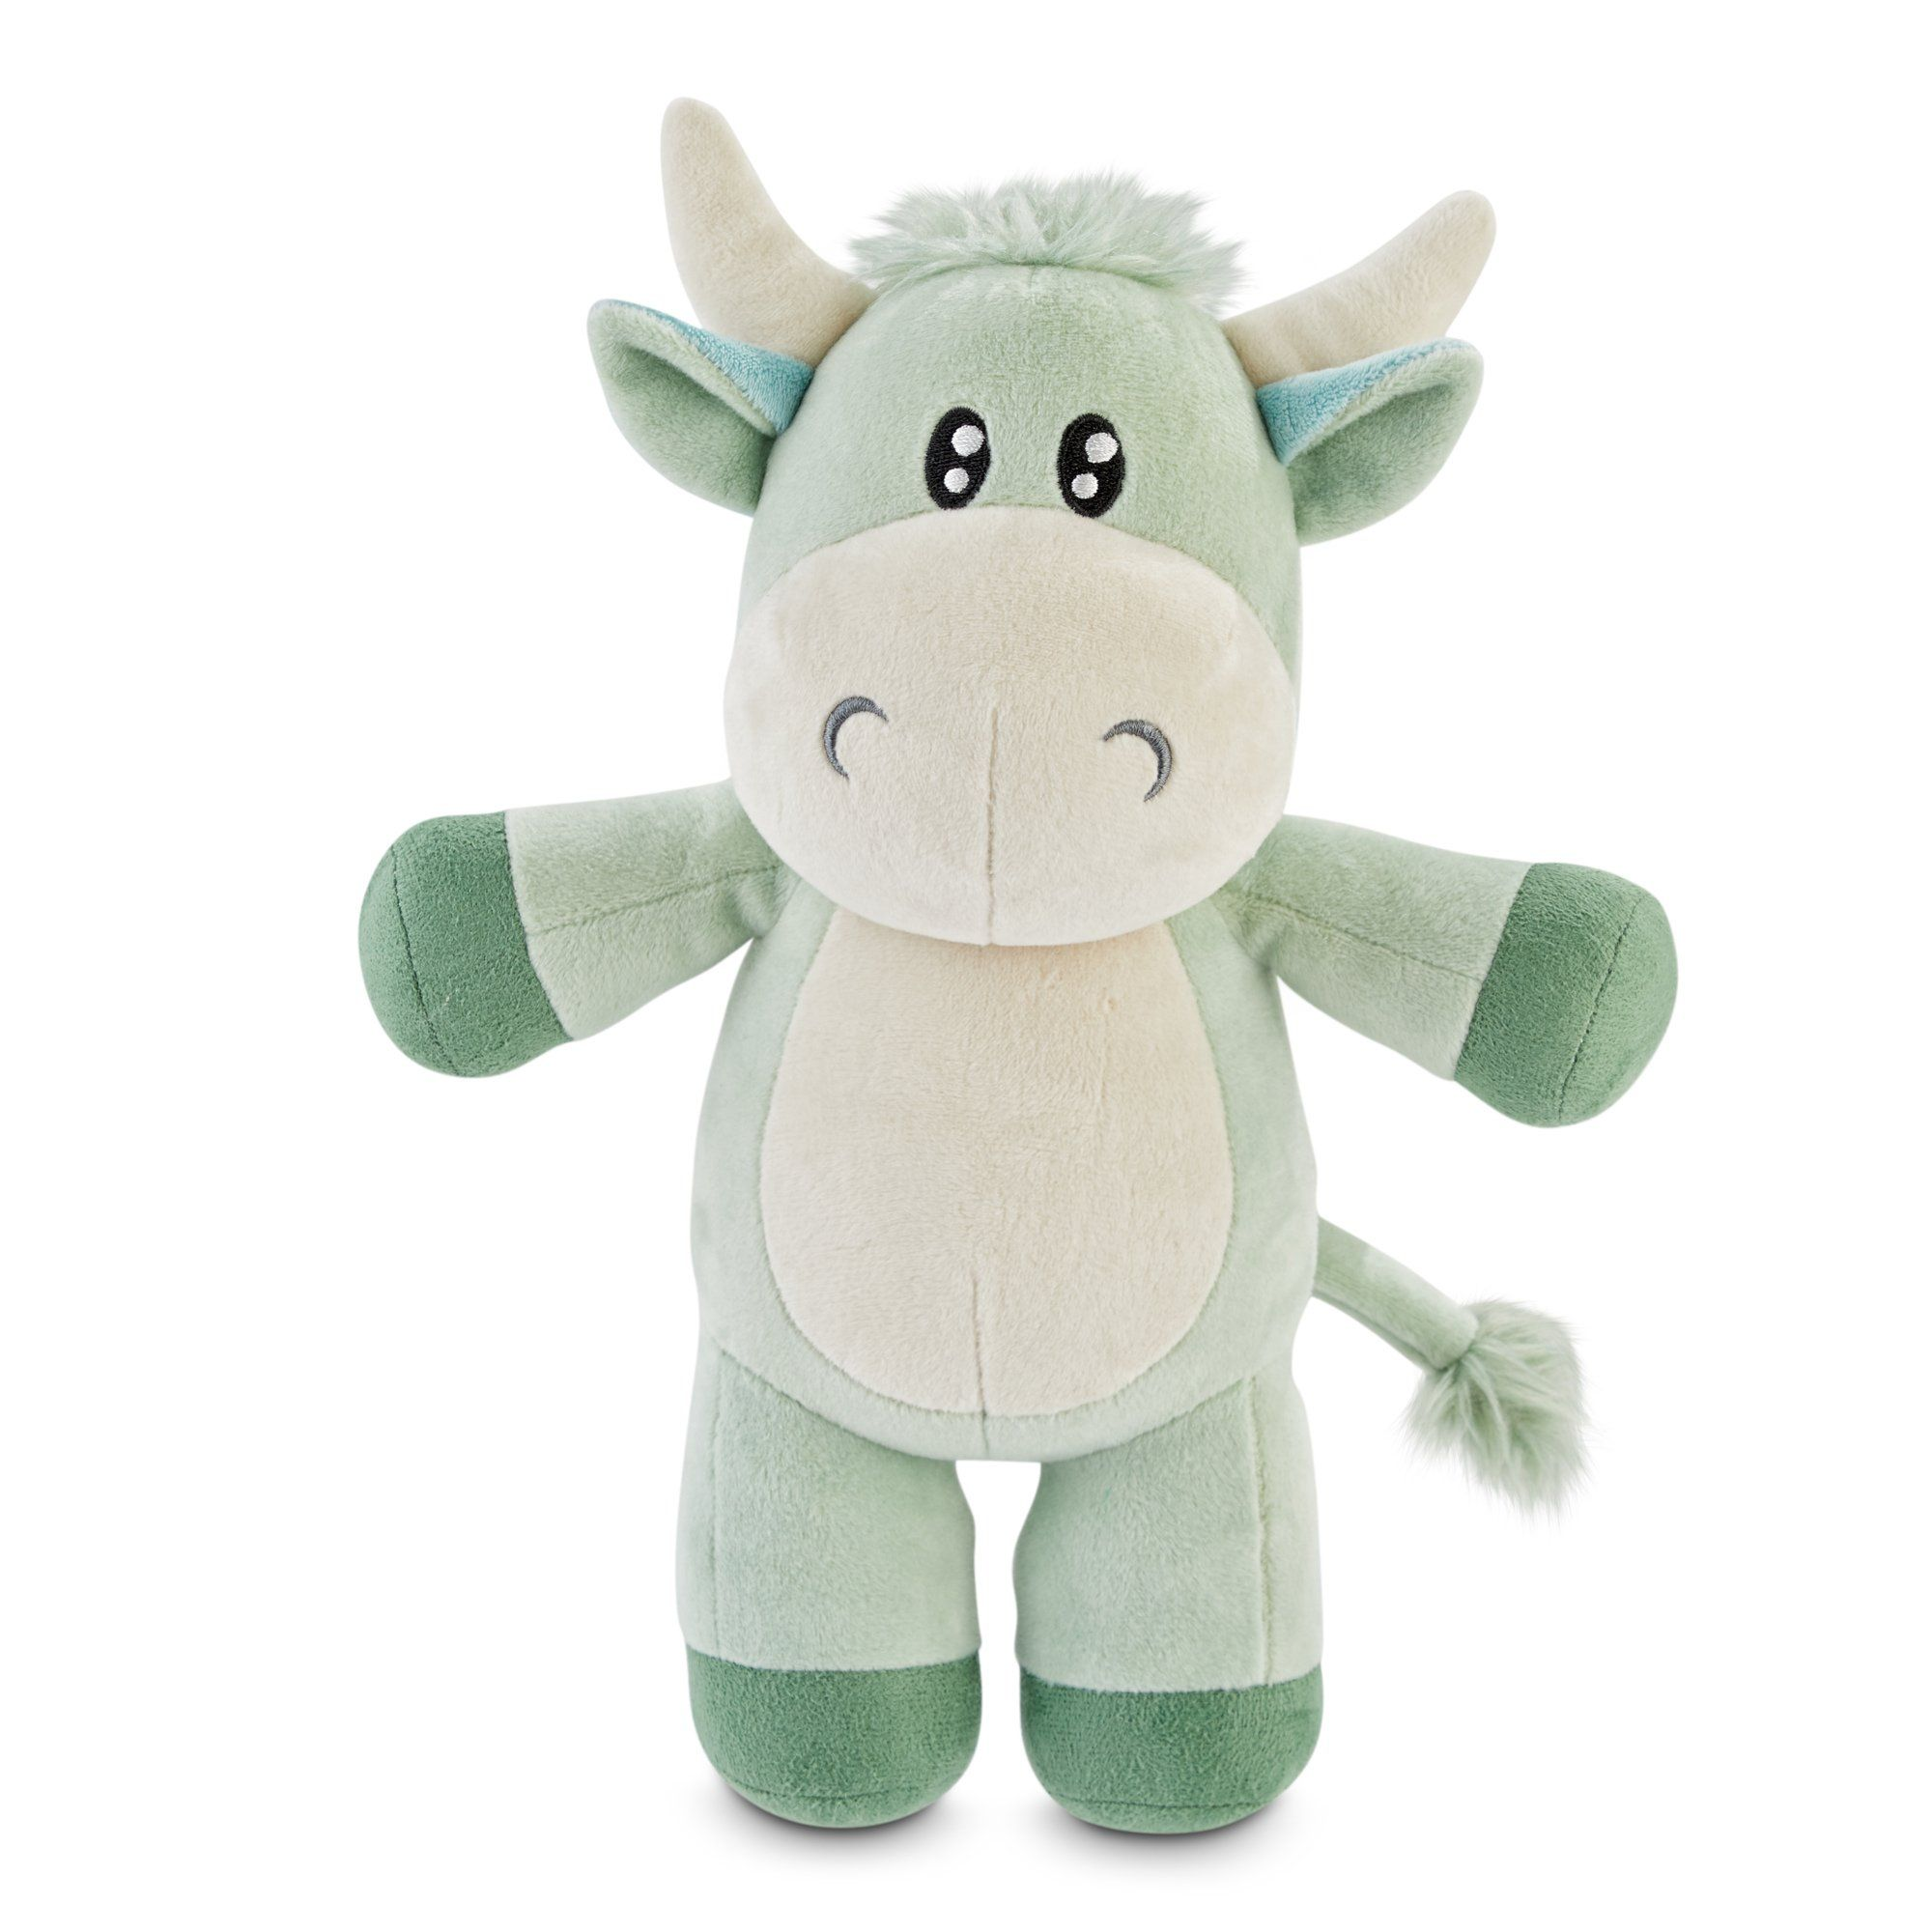 Serenity Cool Calm And Cow Lected Plush Dog Toy In Assorted Styles